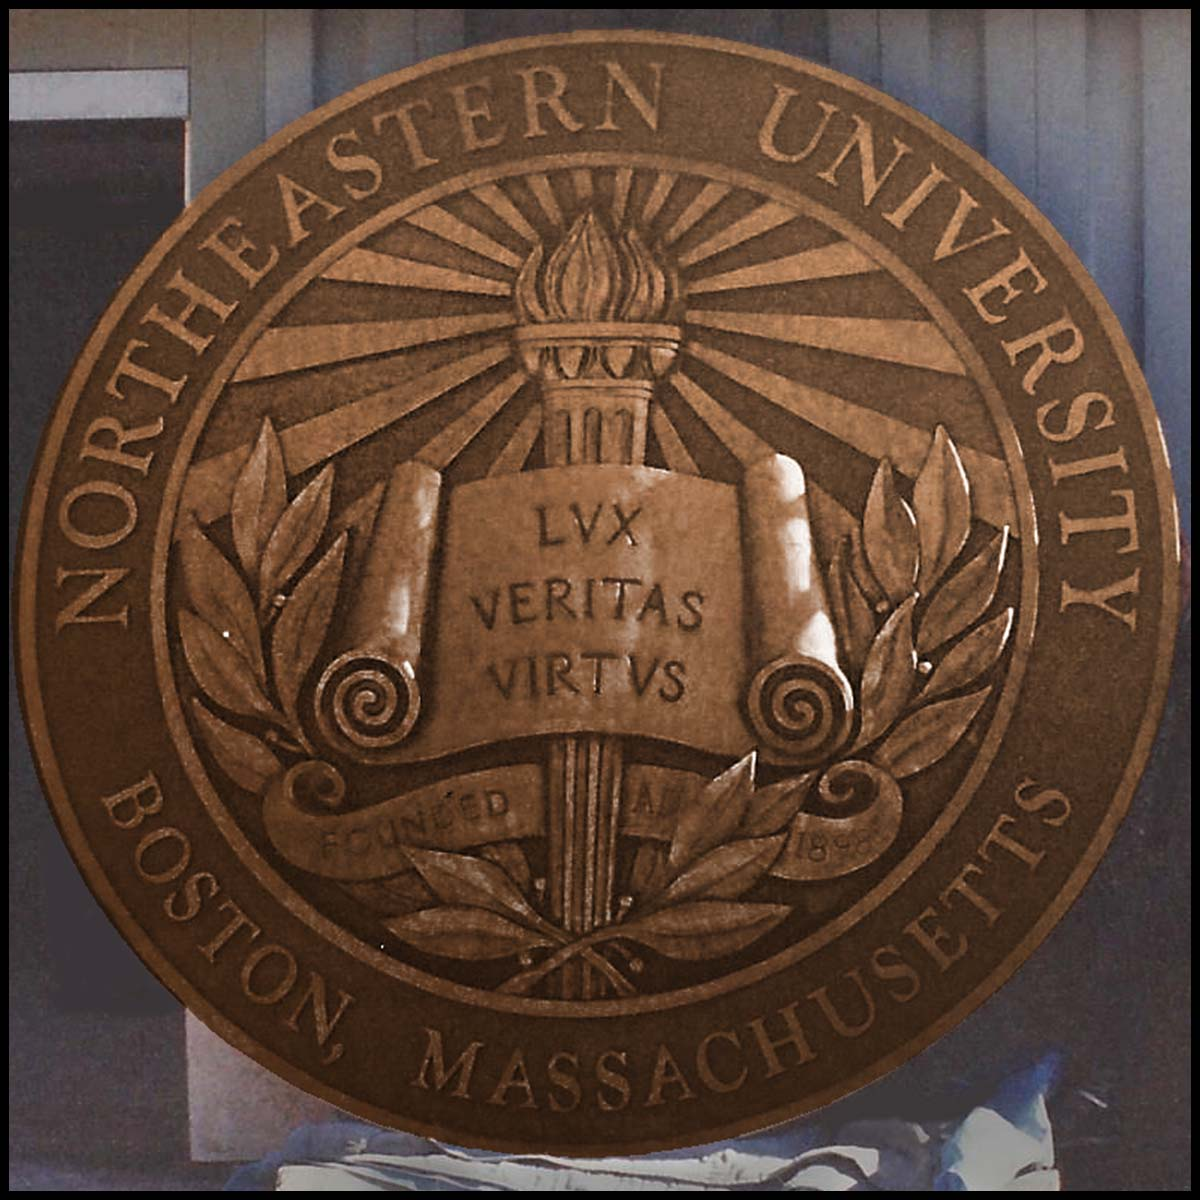 photo of bronze relief sculpture of Northeastern University's seal leaning up against wall